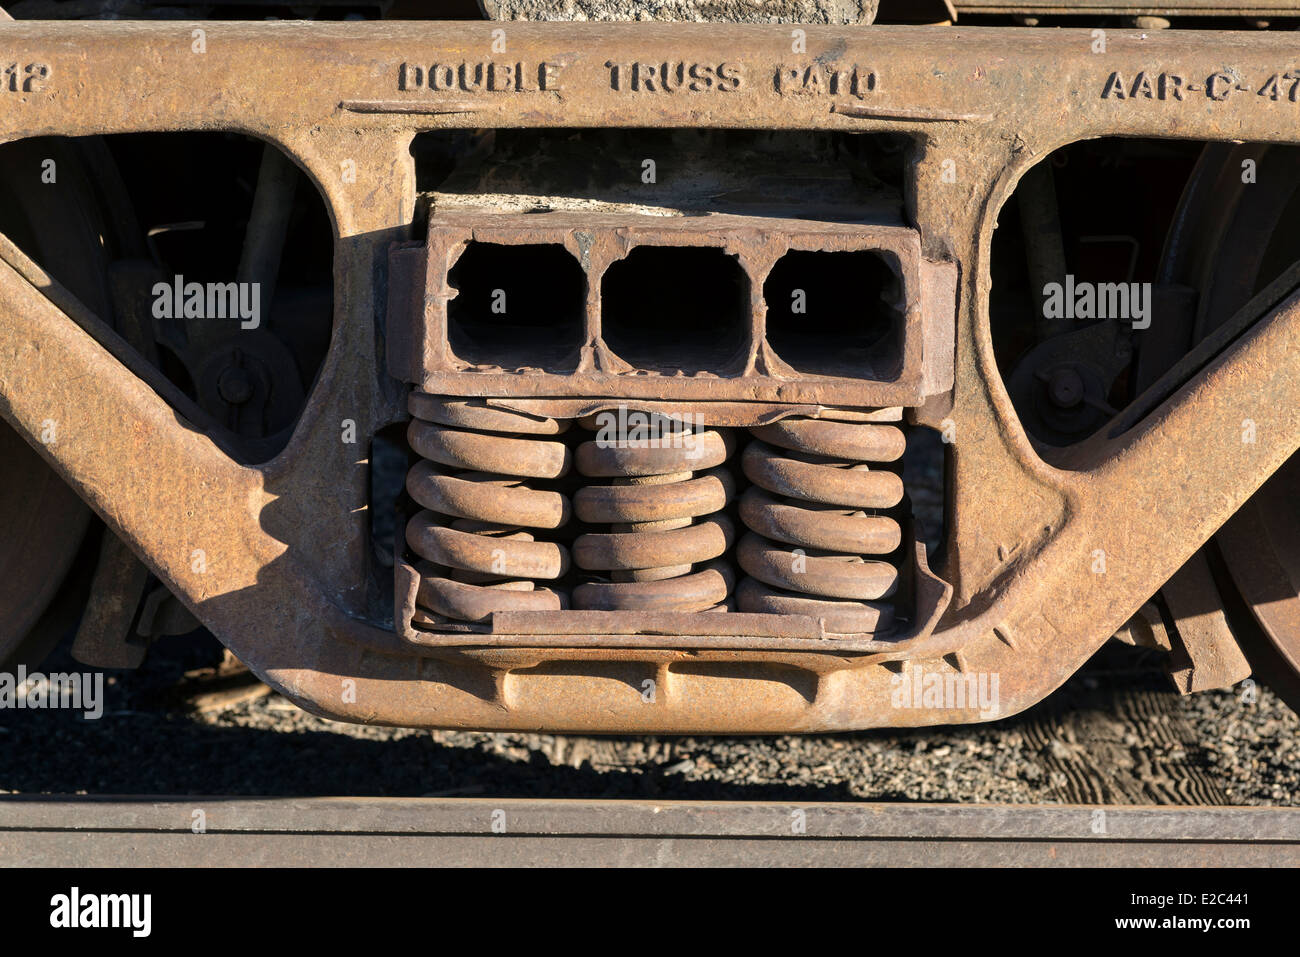 Coil springs of a rail car of the historic Nevada Northern Railway in Ely, Nevada. - Stock Image